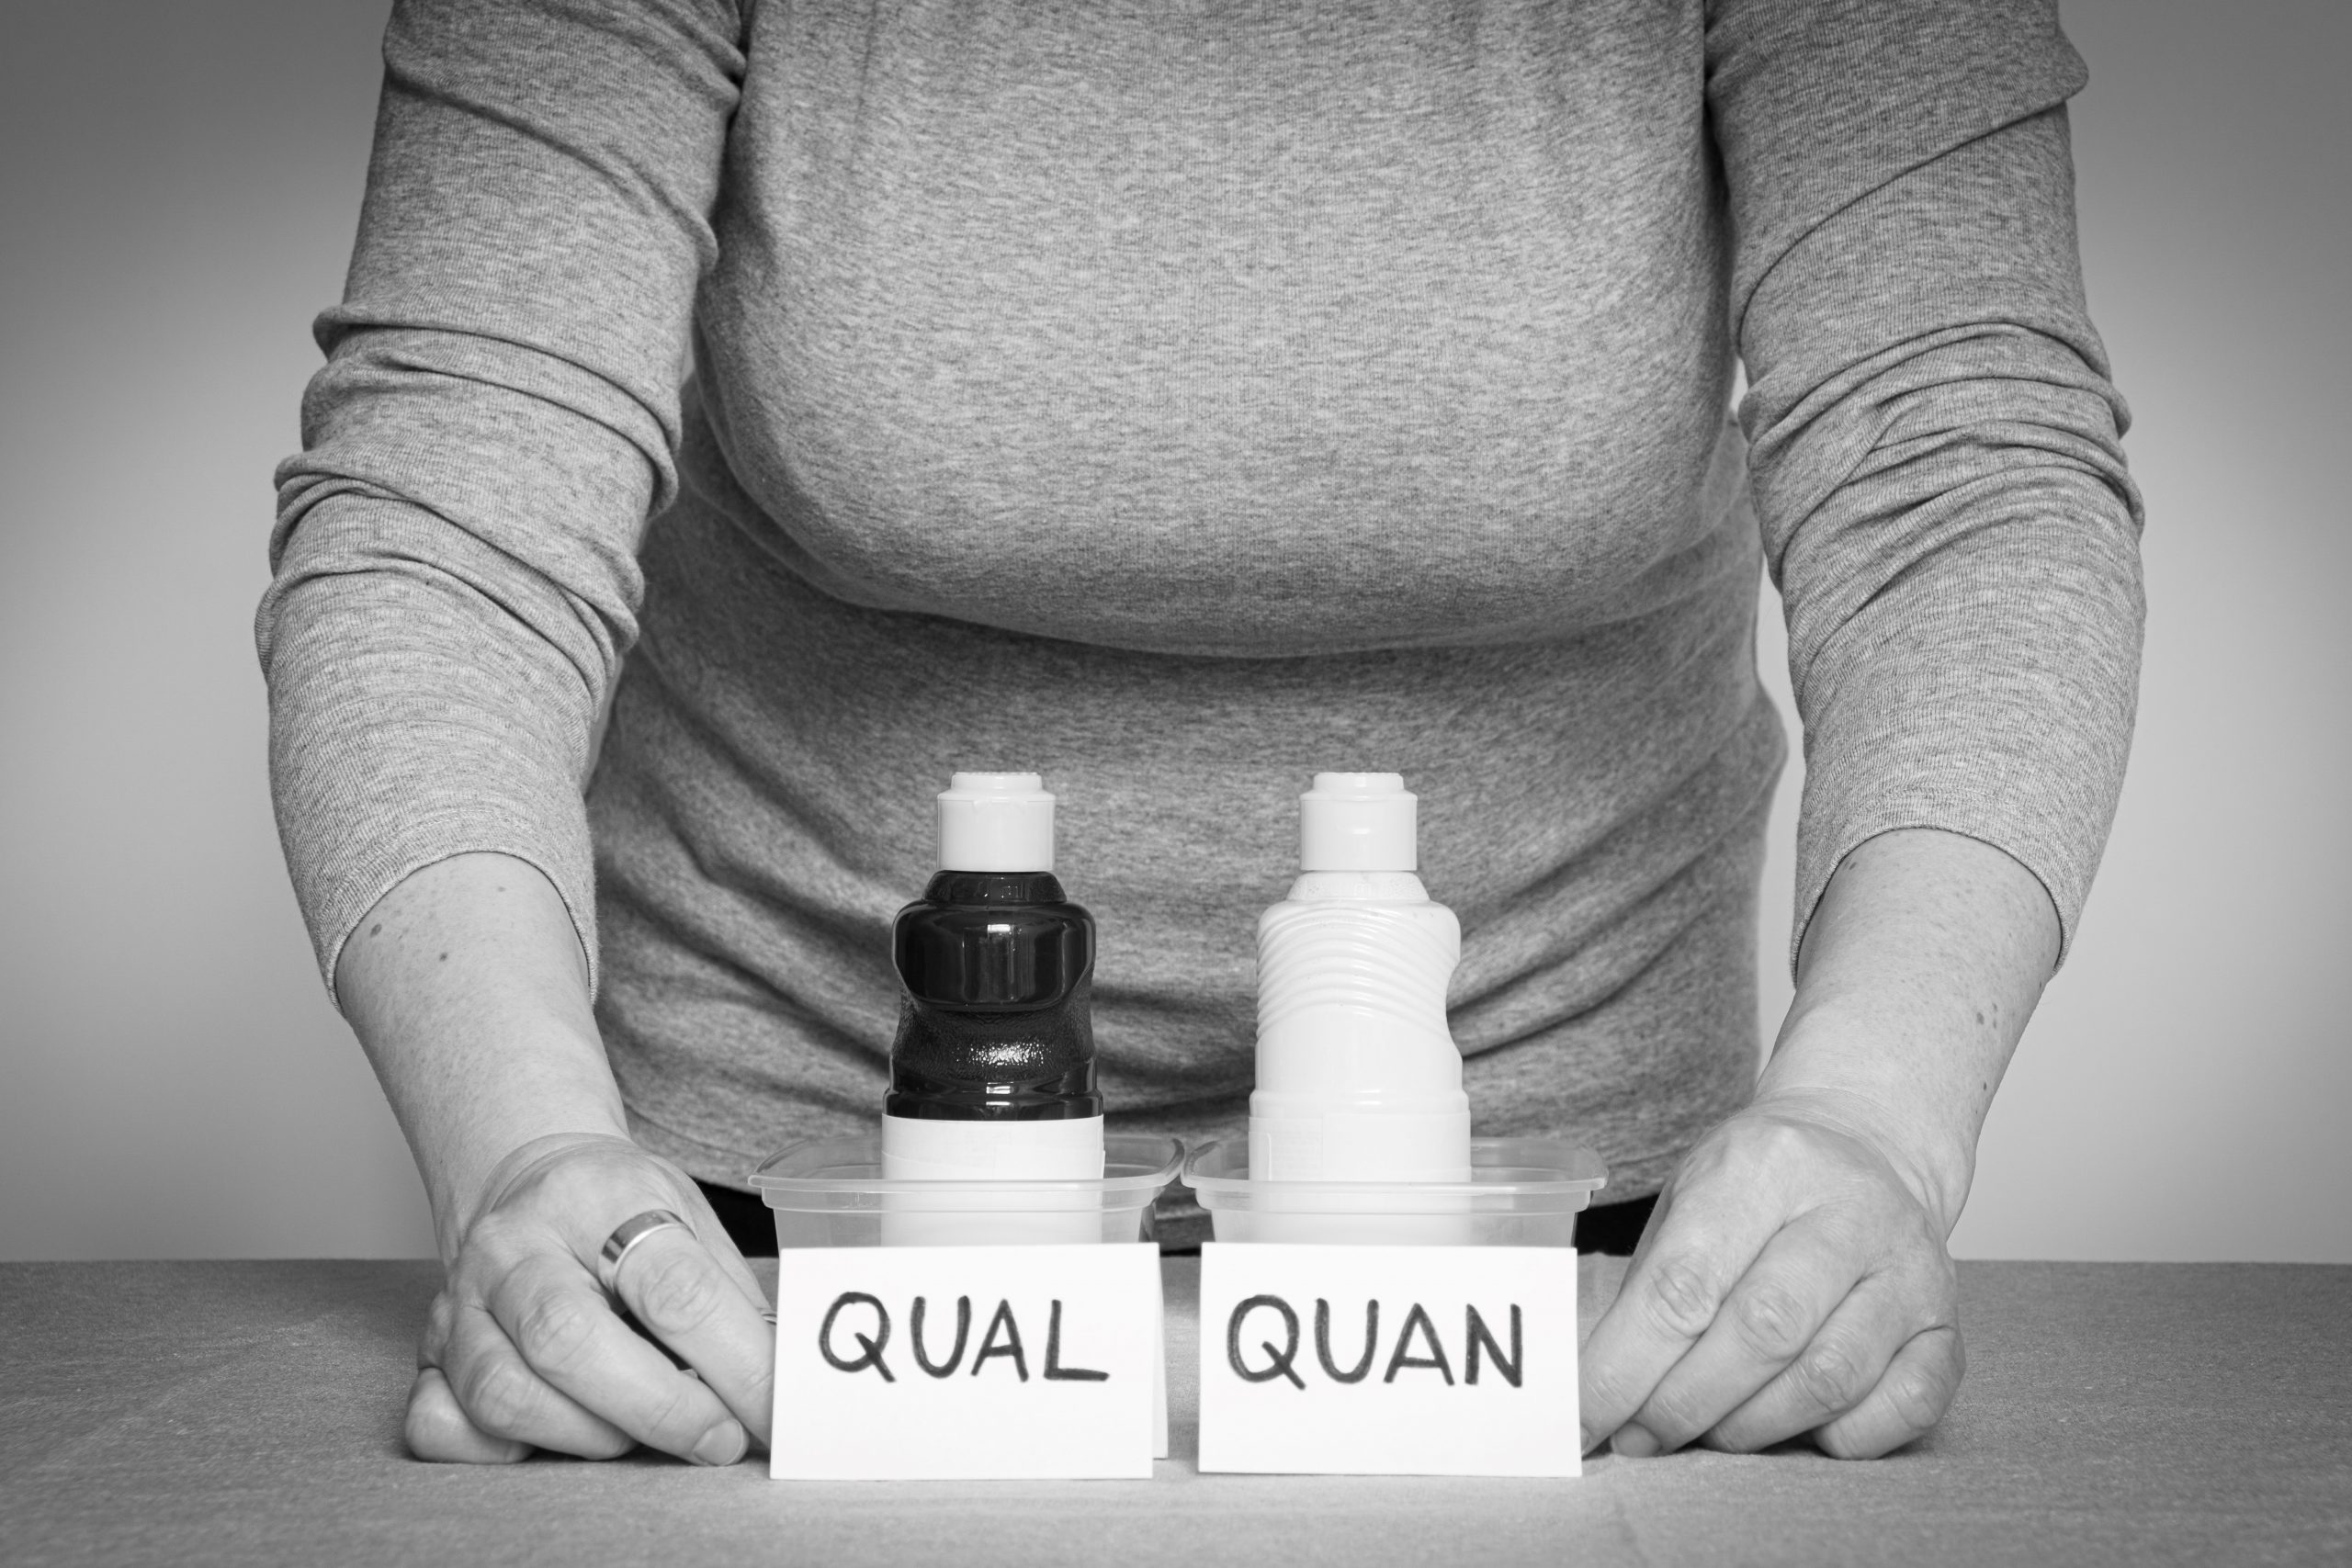 QUAL and QUANT tags